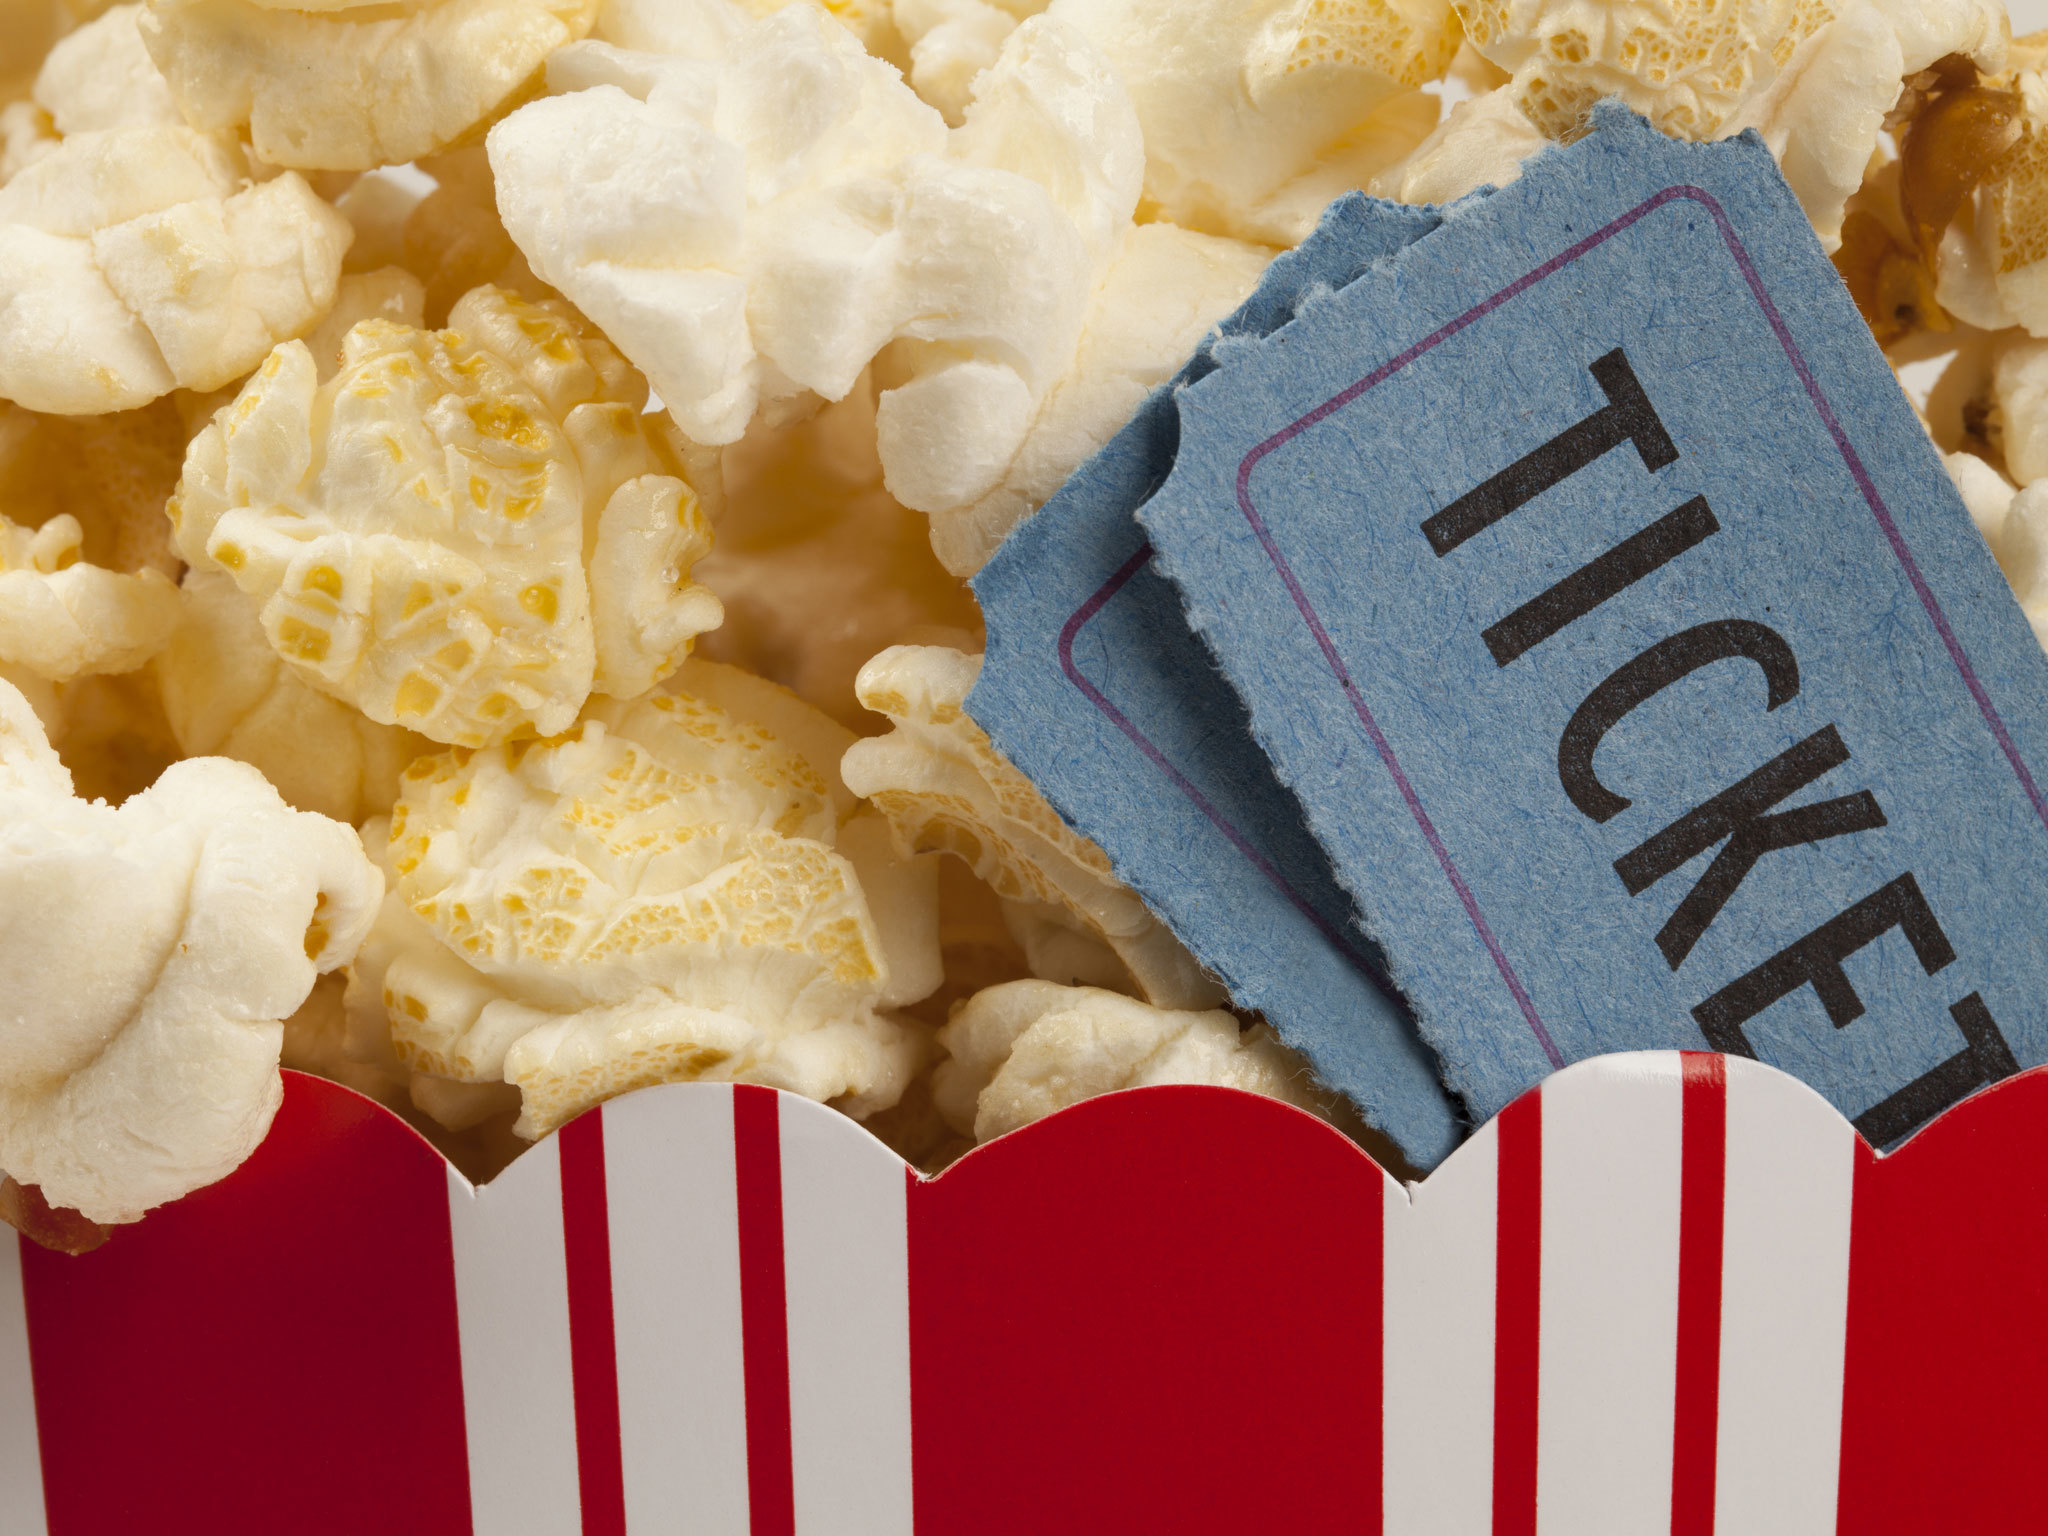 Win a playful or sophisticated cinema experience